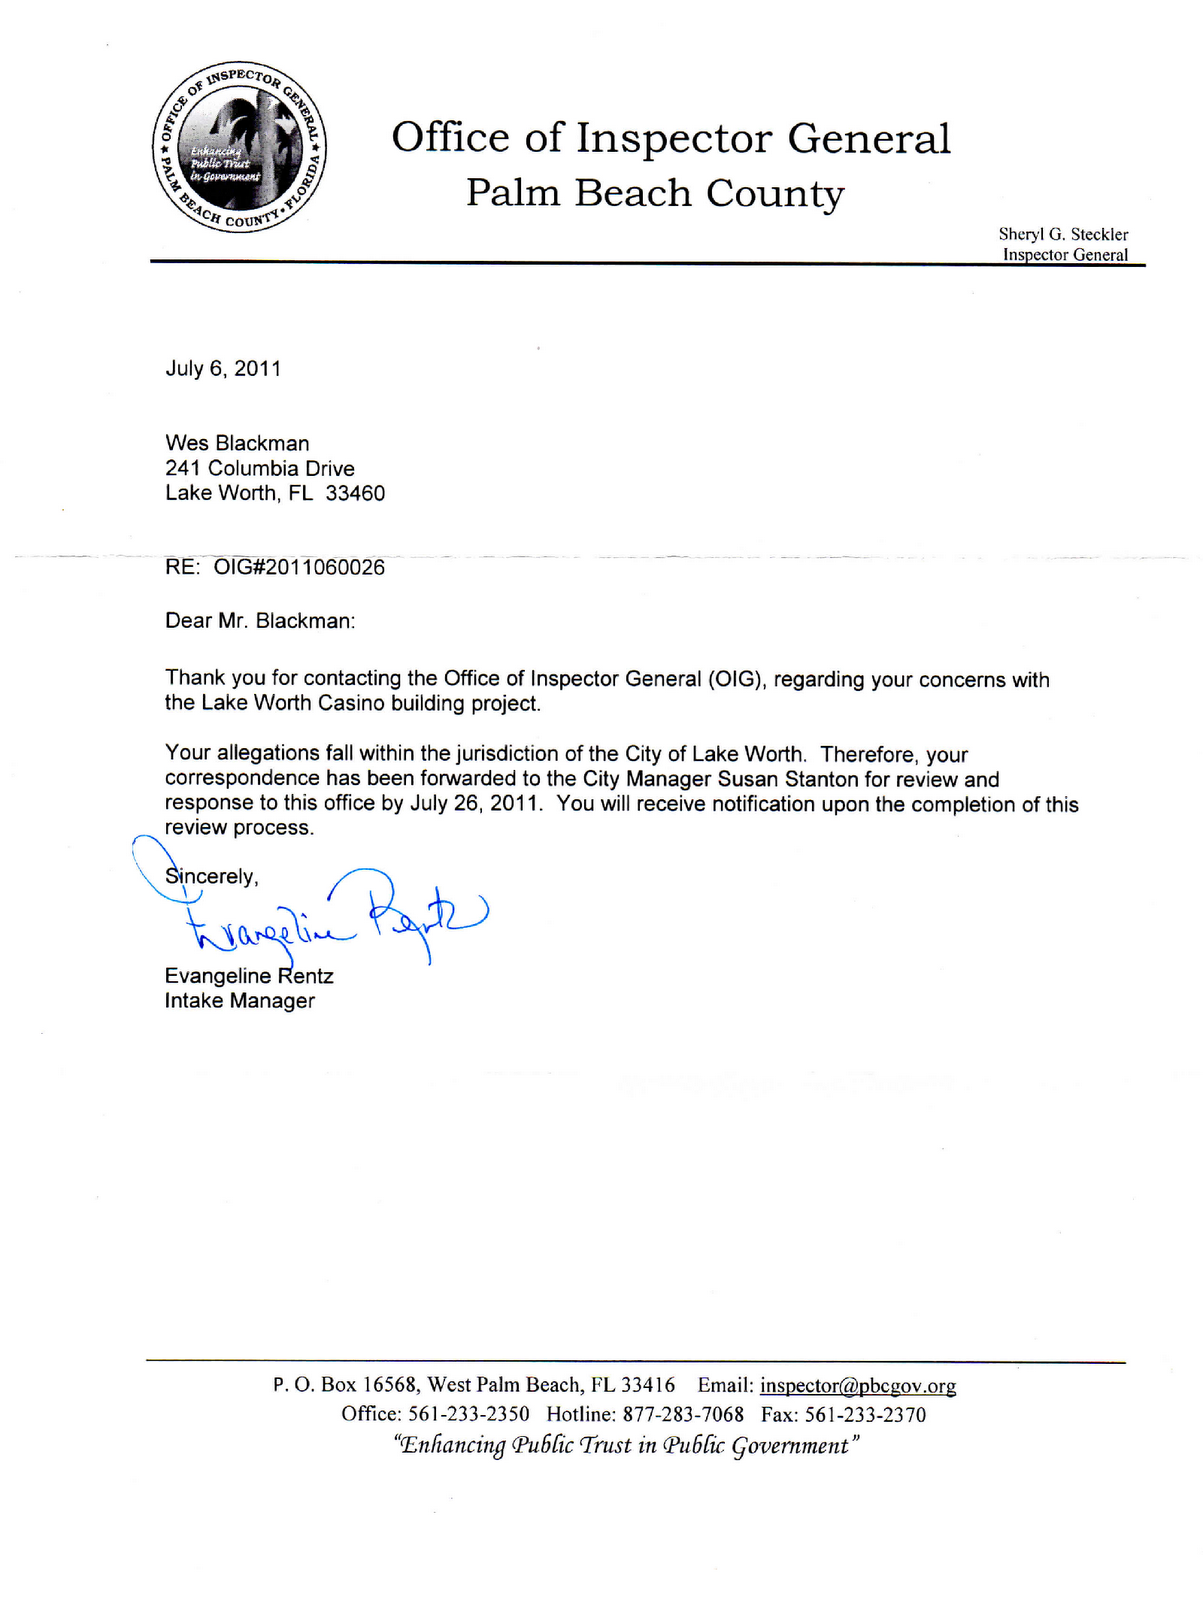 City Lake Worth Acknowledgement Letter From Inspector General How